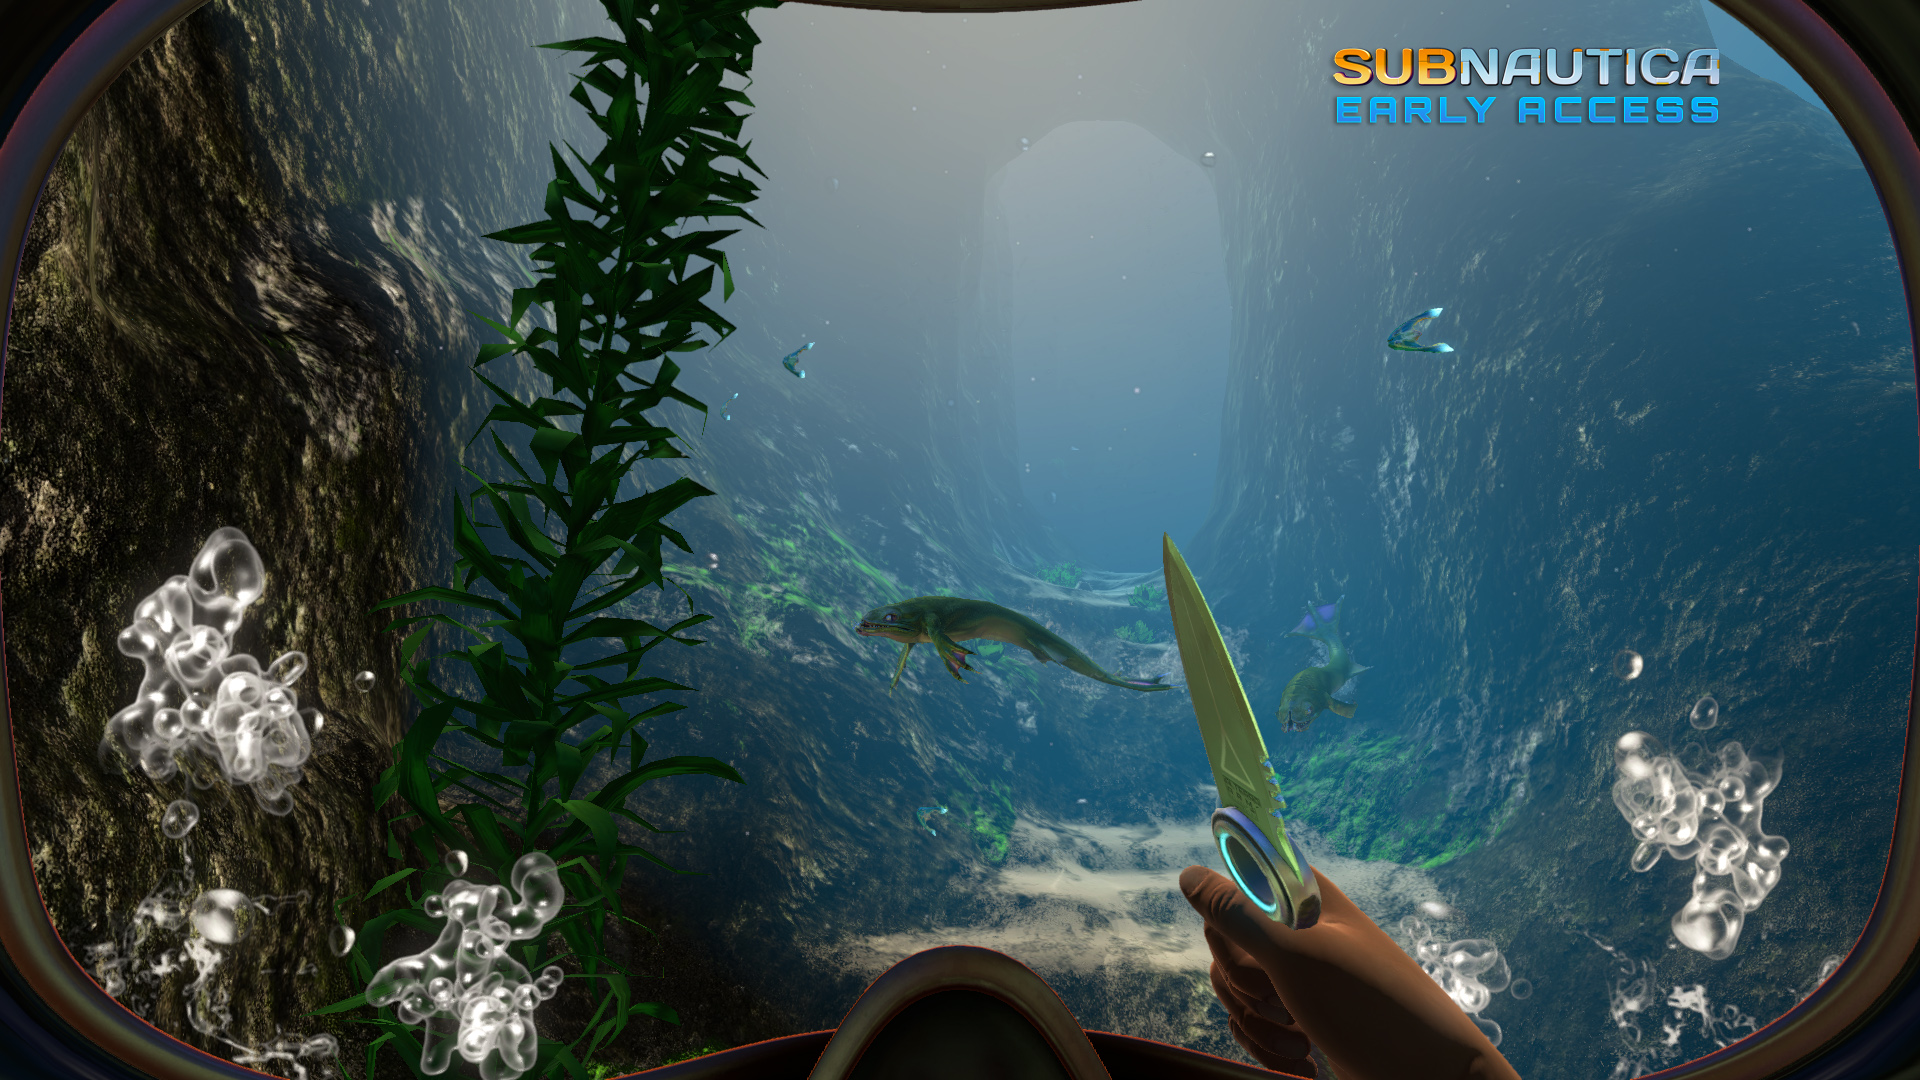 Subnautica Update Free Download PC Games Pinterest uk